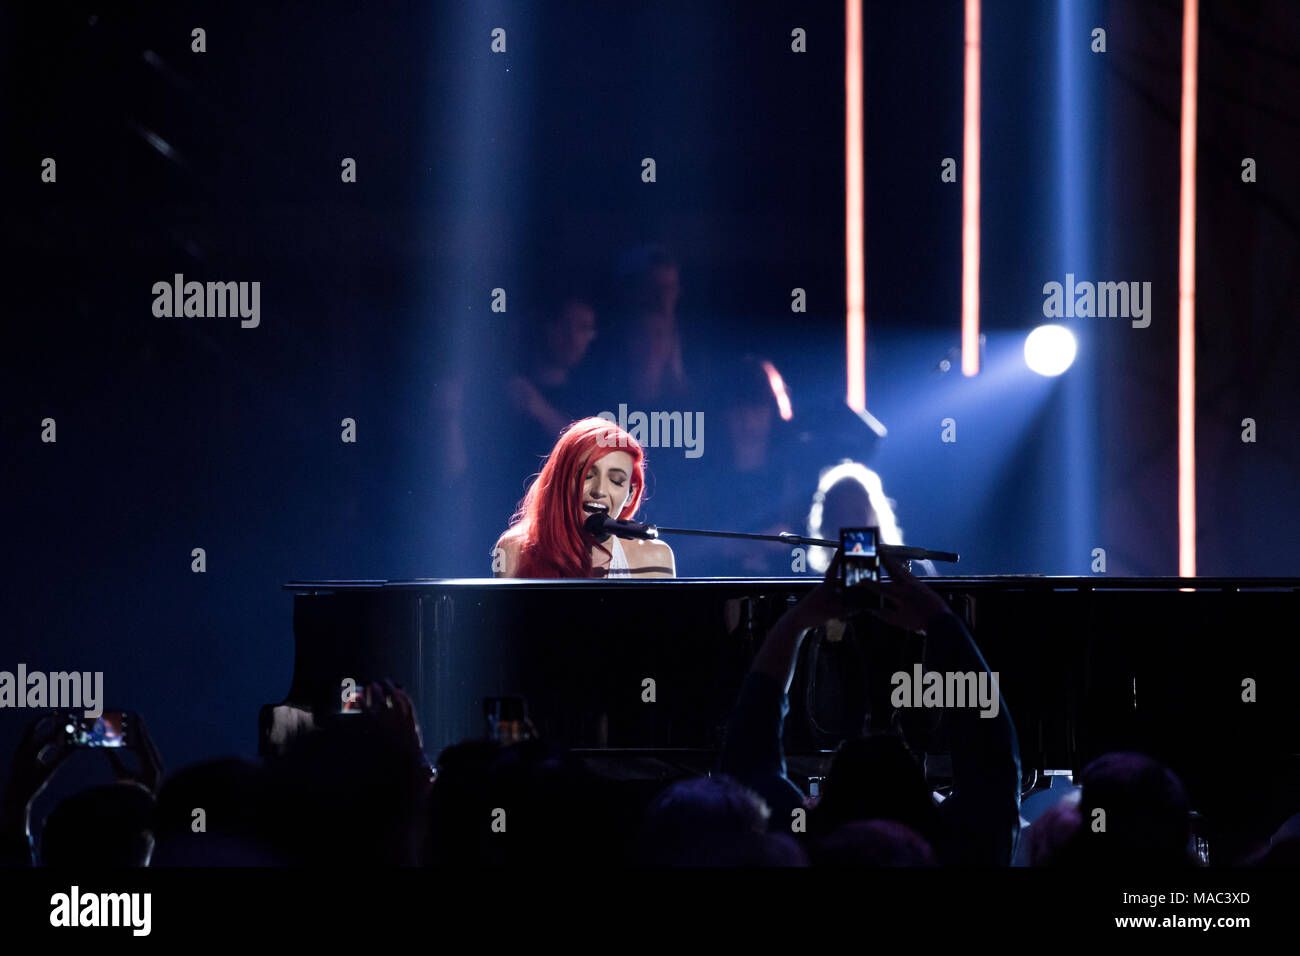 Vancouver, CANADA. 26th March, 2018. Lights performs at the 2018 Juno Awards in Vancouver. Credit: Bobby Singh/fohphoto - Stock Image